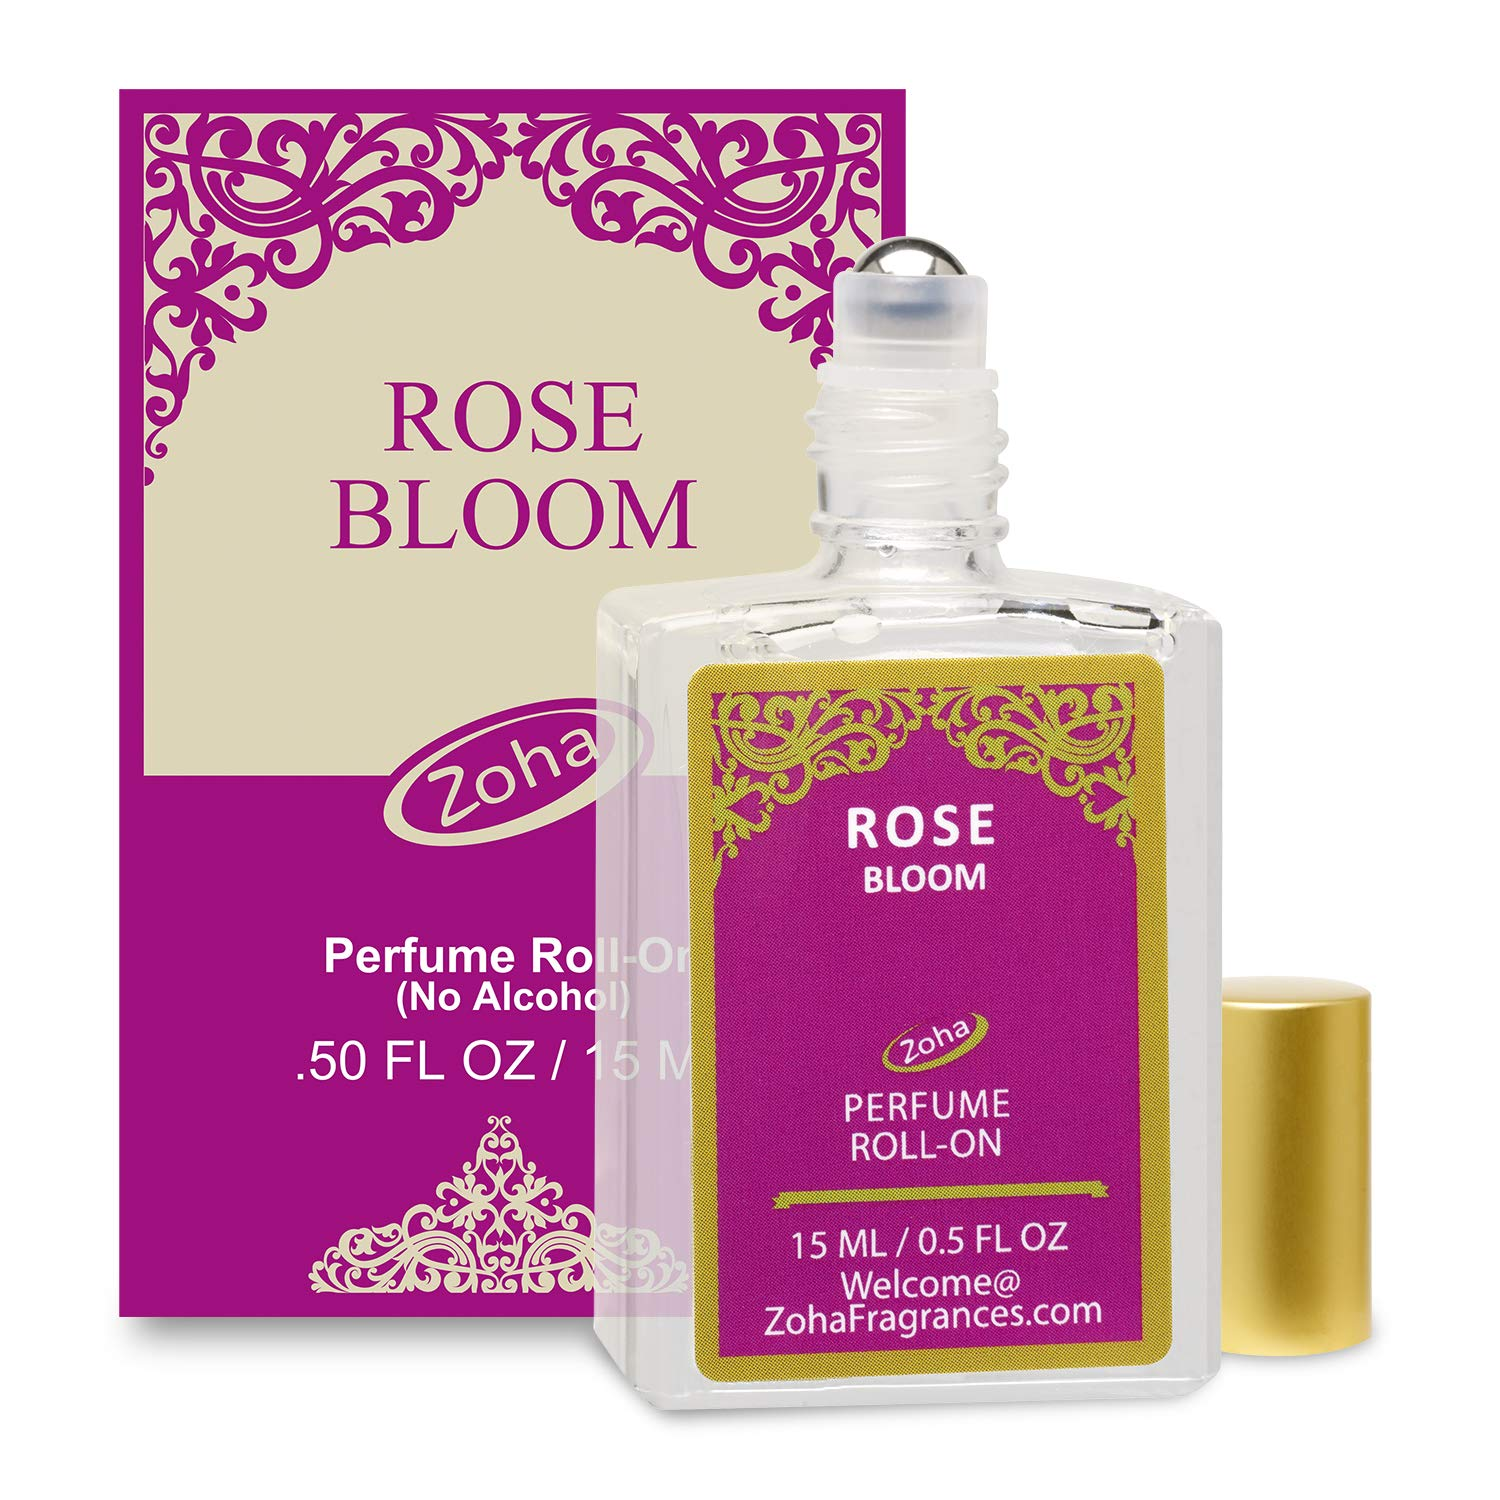 Rose Bloom Perfume Oil Roll-On (No Alcohol) - Essential Oils and Clean Beauty Hypoallergenic Vegan Perfumes for Women and Men by Zoha Fragrances, 15 ml / 0.50 fl Oz